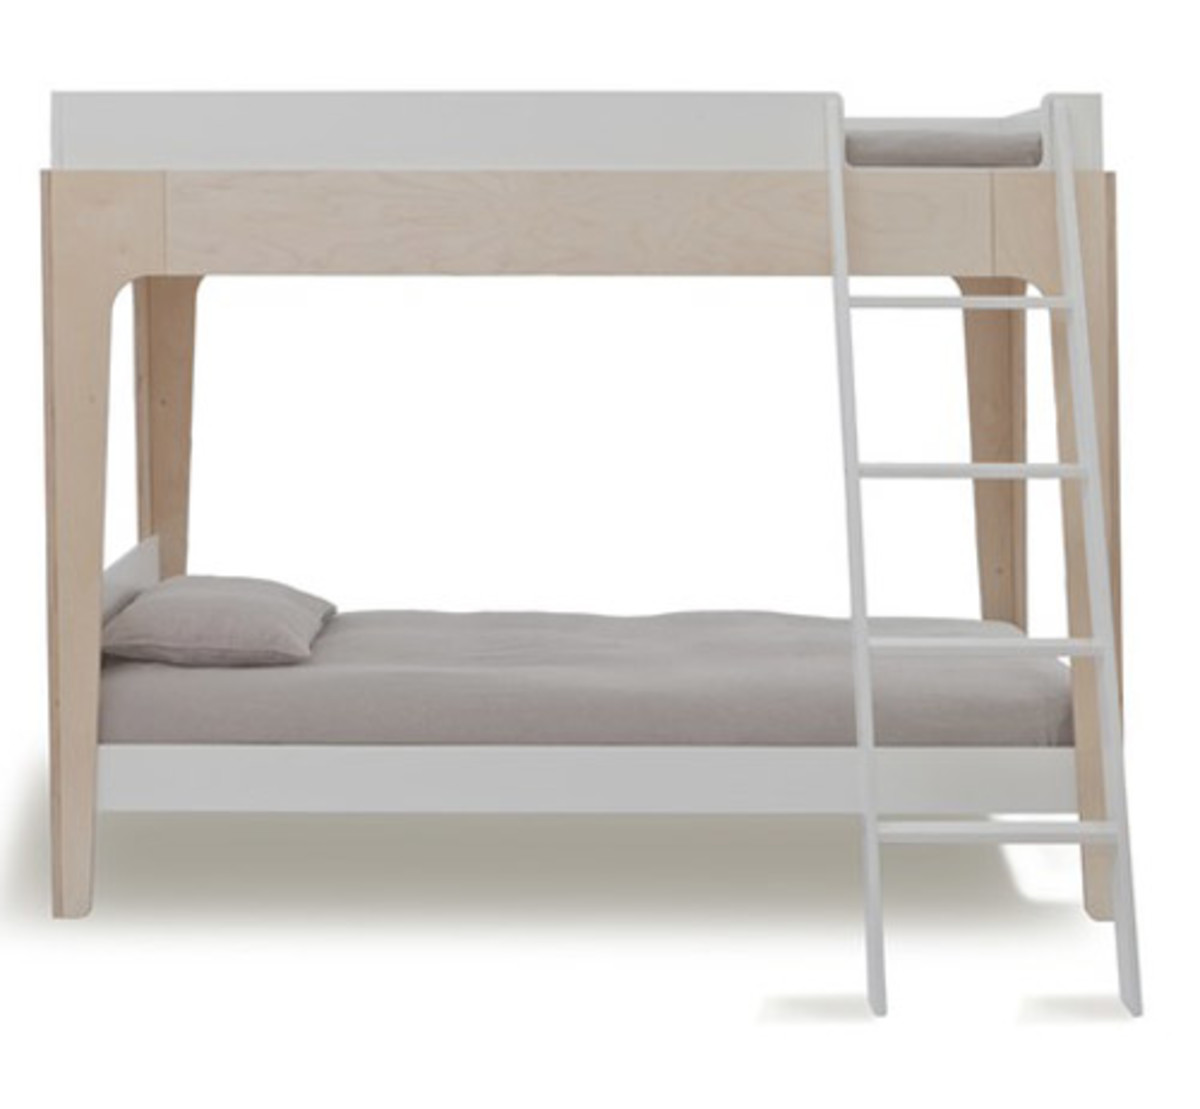 Oeuf-Perch-Bunk-Bed-in-Birch-and-White